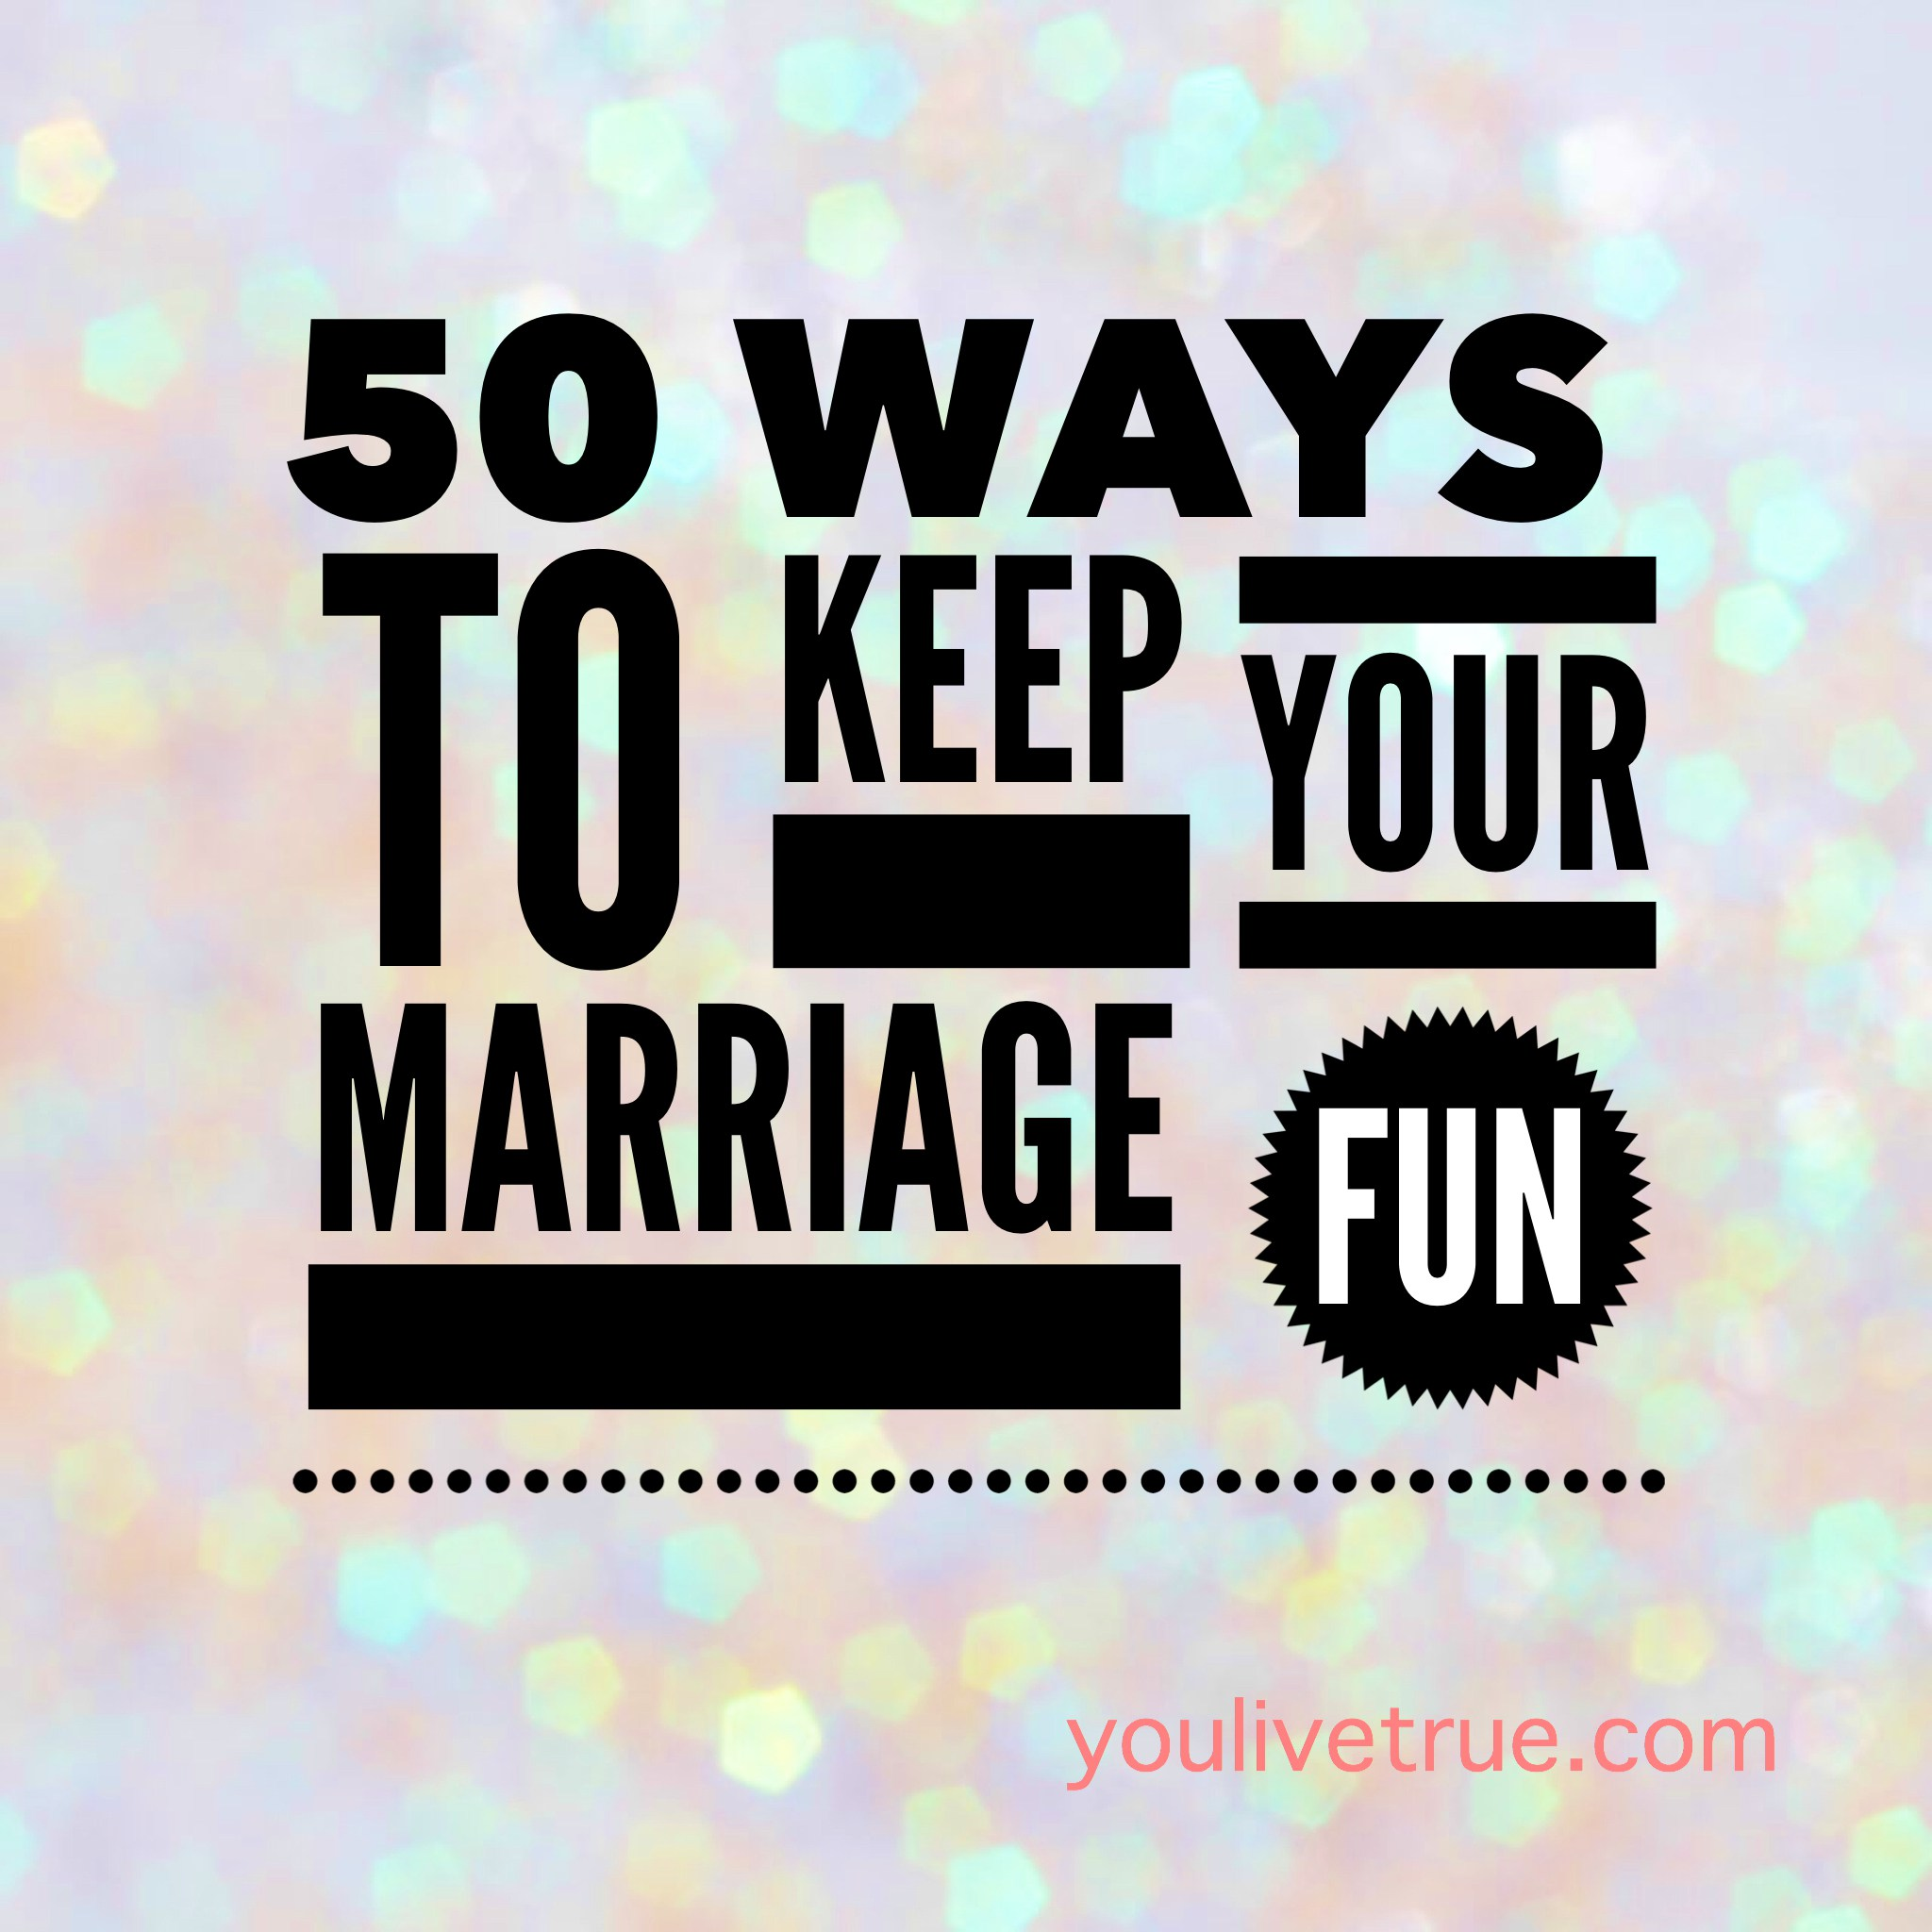 50 ways to keep your marriage fun